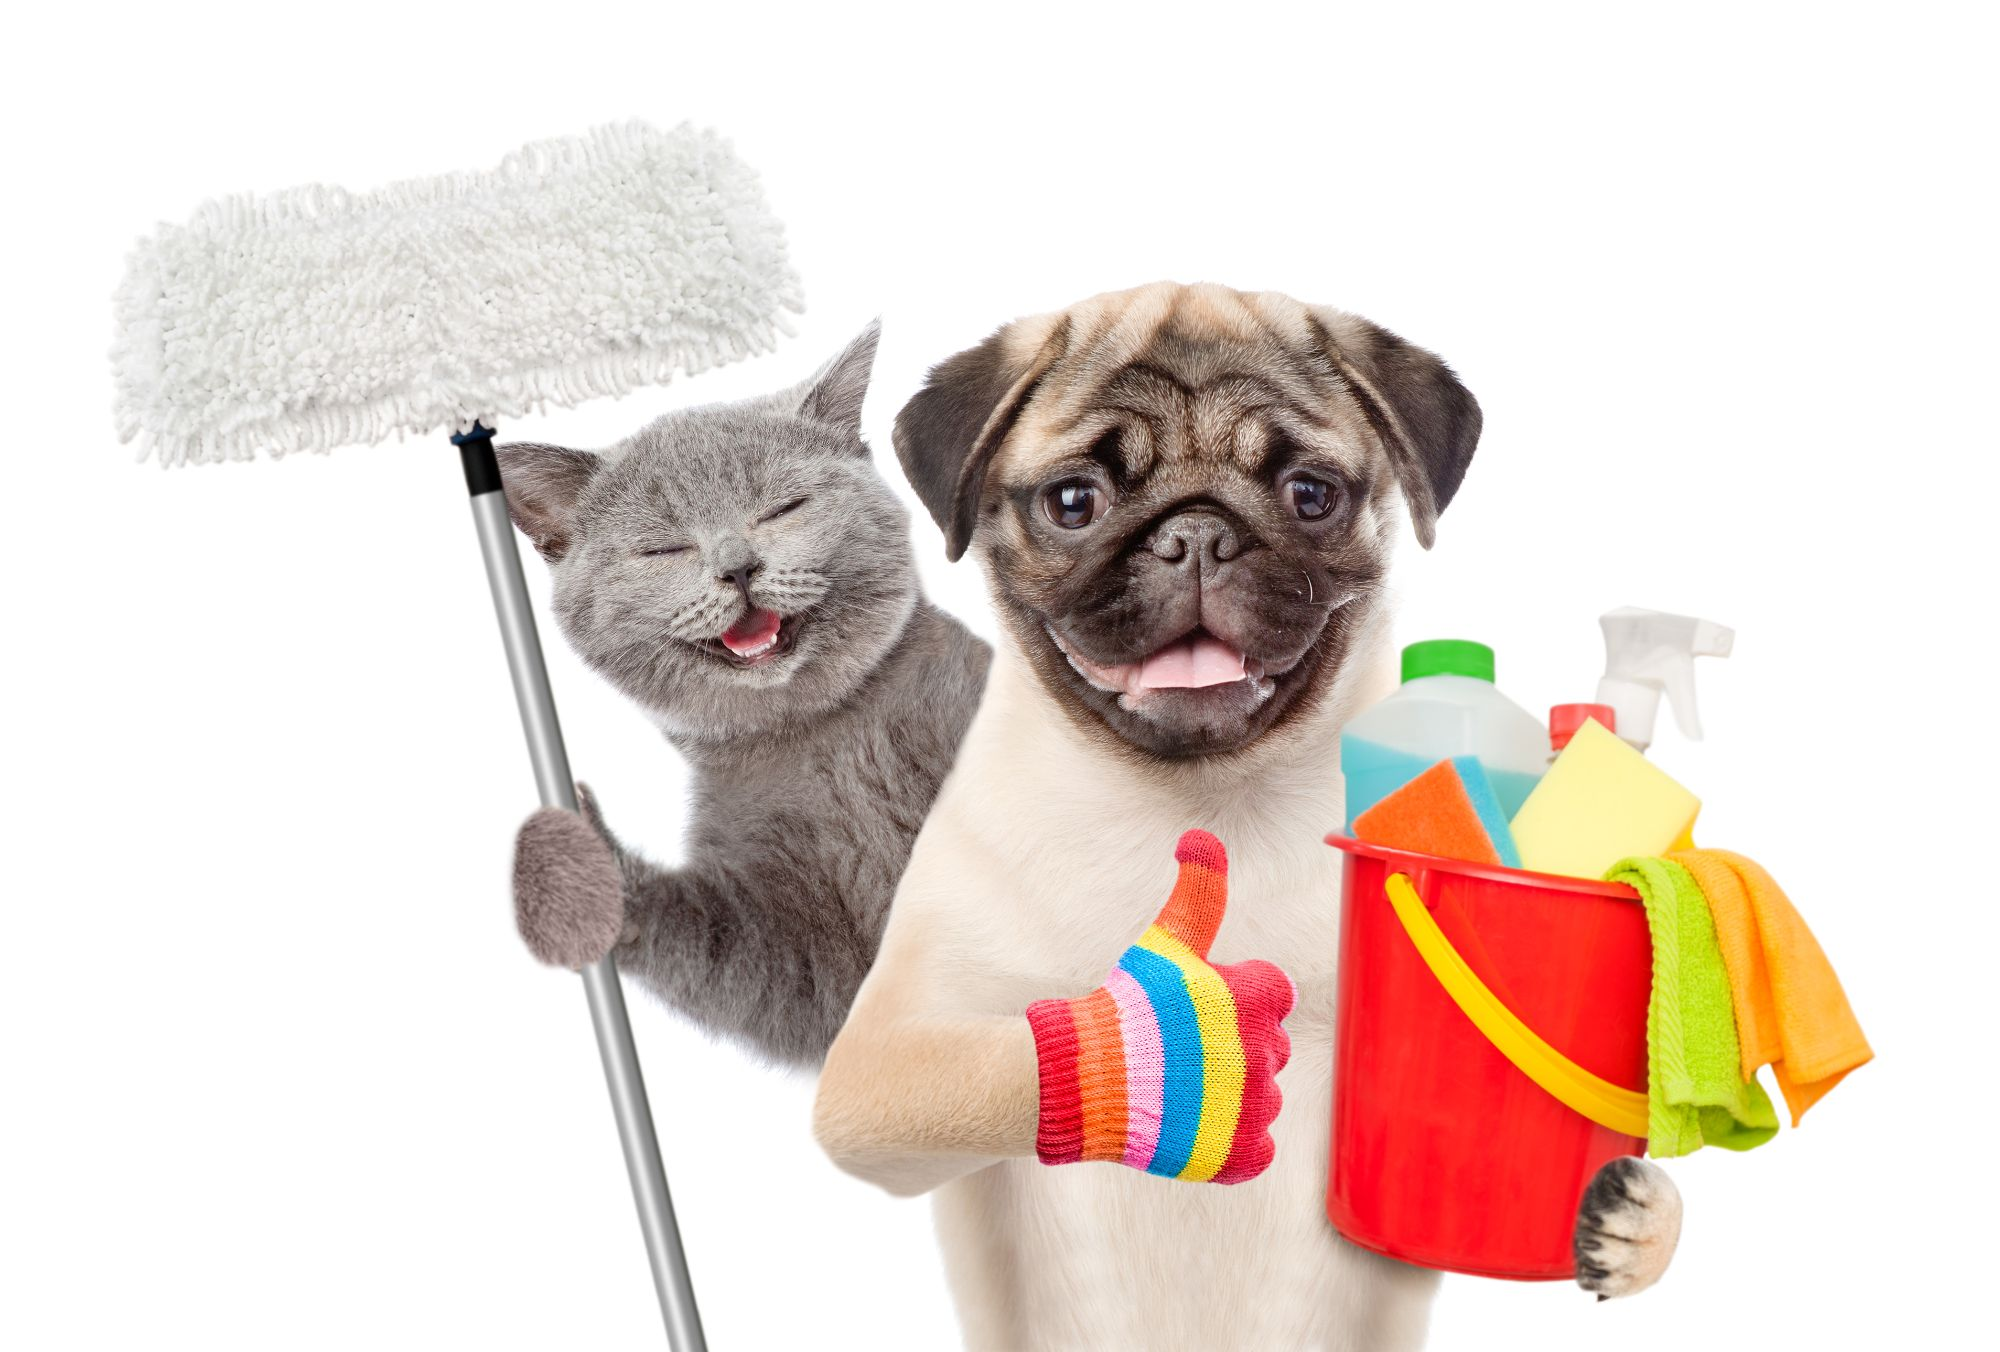 Dog & Cat with Cleaning Equipment